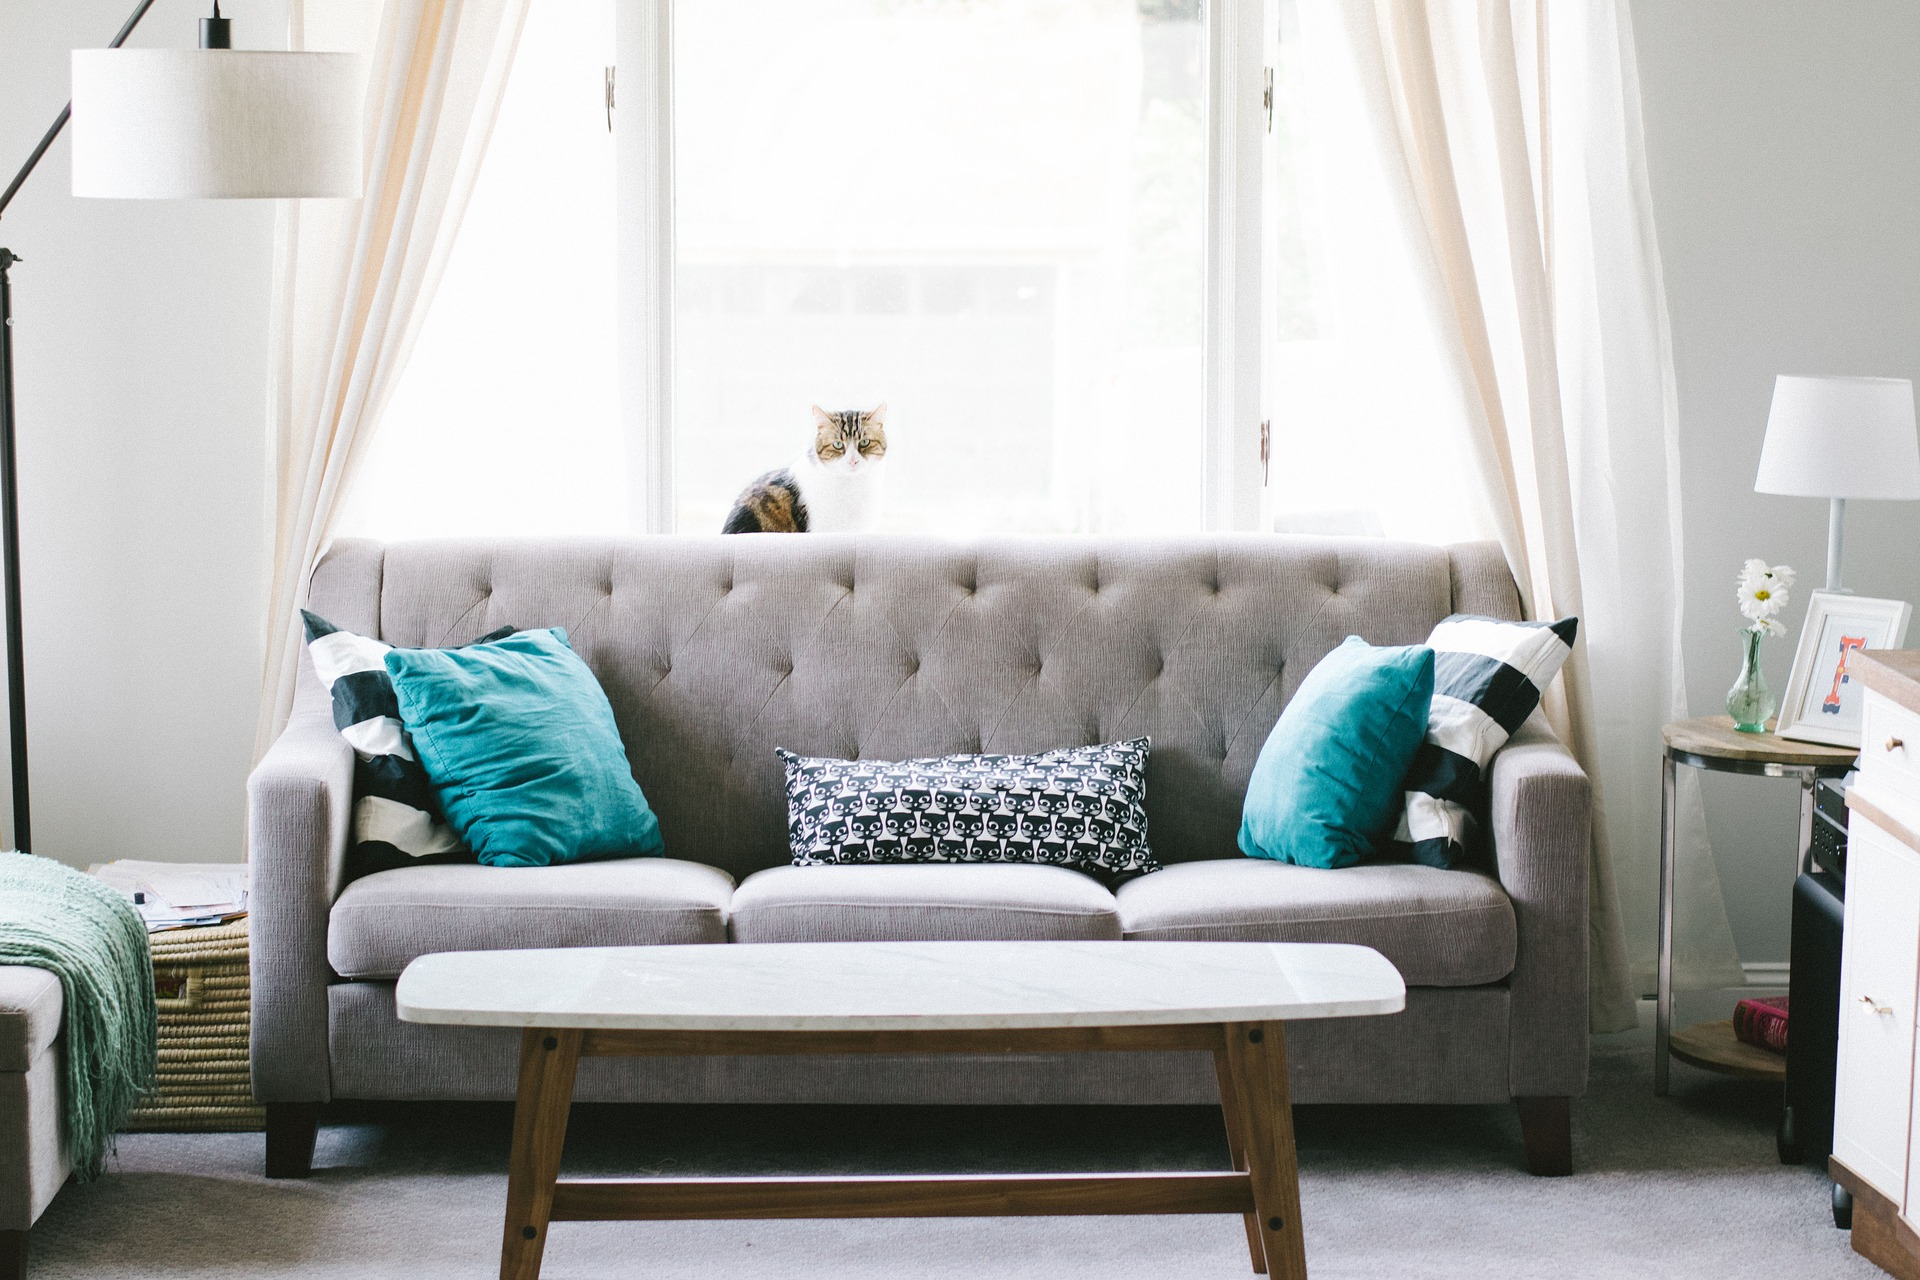 6 Tips on How to Get Your Living Room Decor Set for Easter_3 living room decor 6 Tips on How to Get Your Living Room Decor Set for Easter 6 Tips on How to Get Your Living Room Decor Set for Easter 5